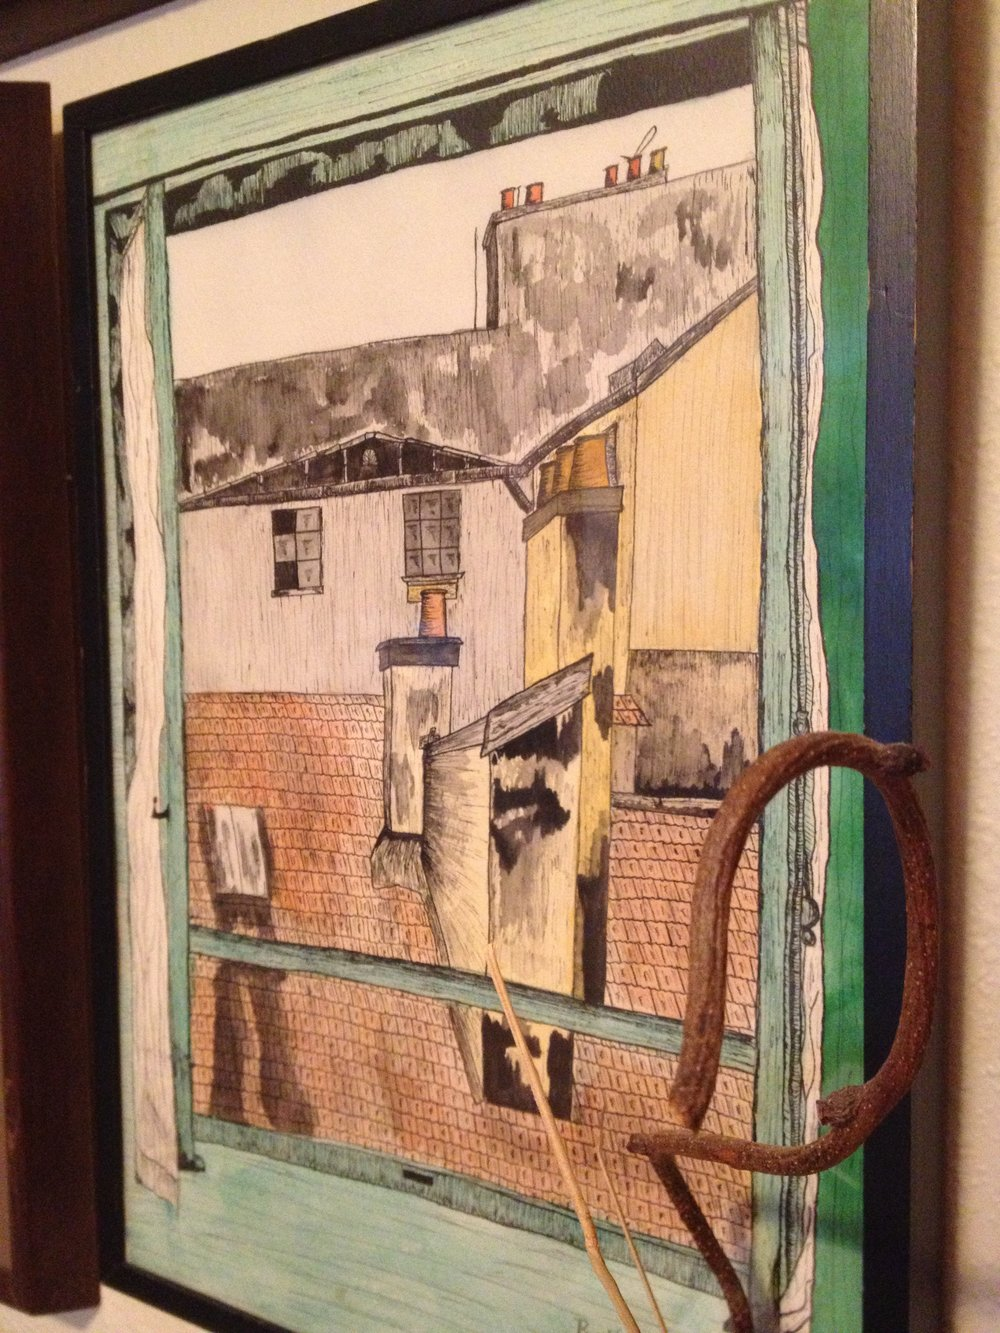 Bill painted this canvas depicting the view from the single window in his very small Parisian bedroom.